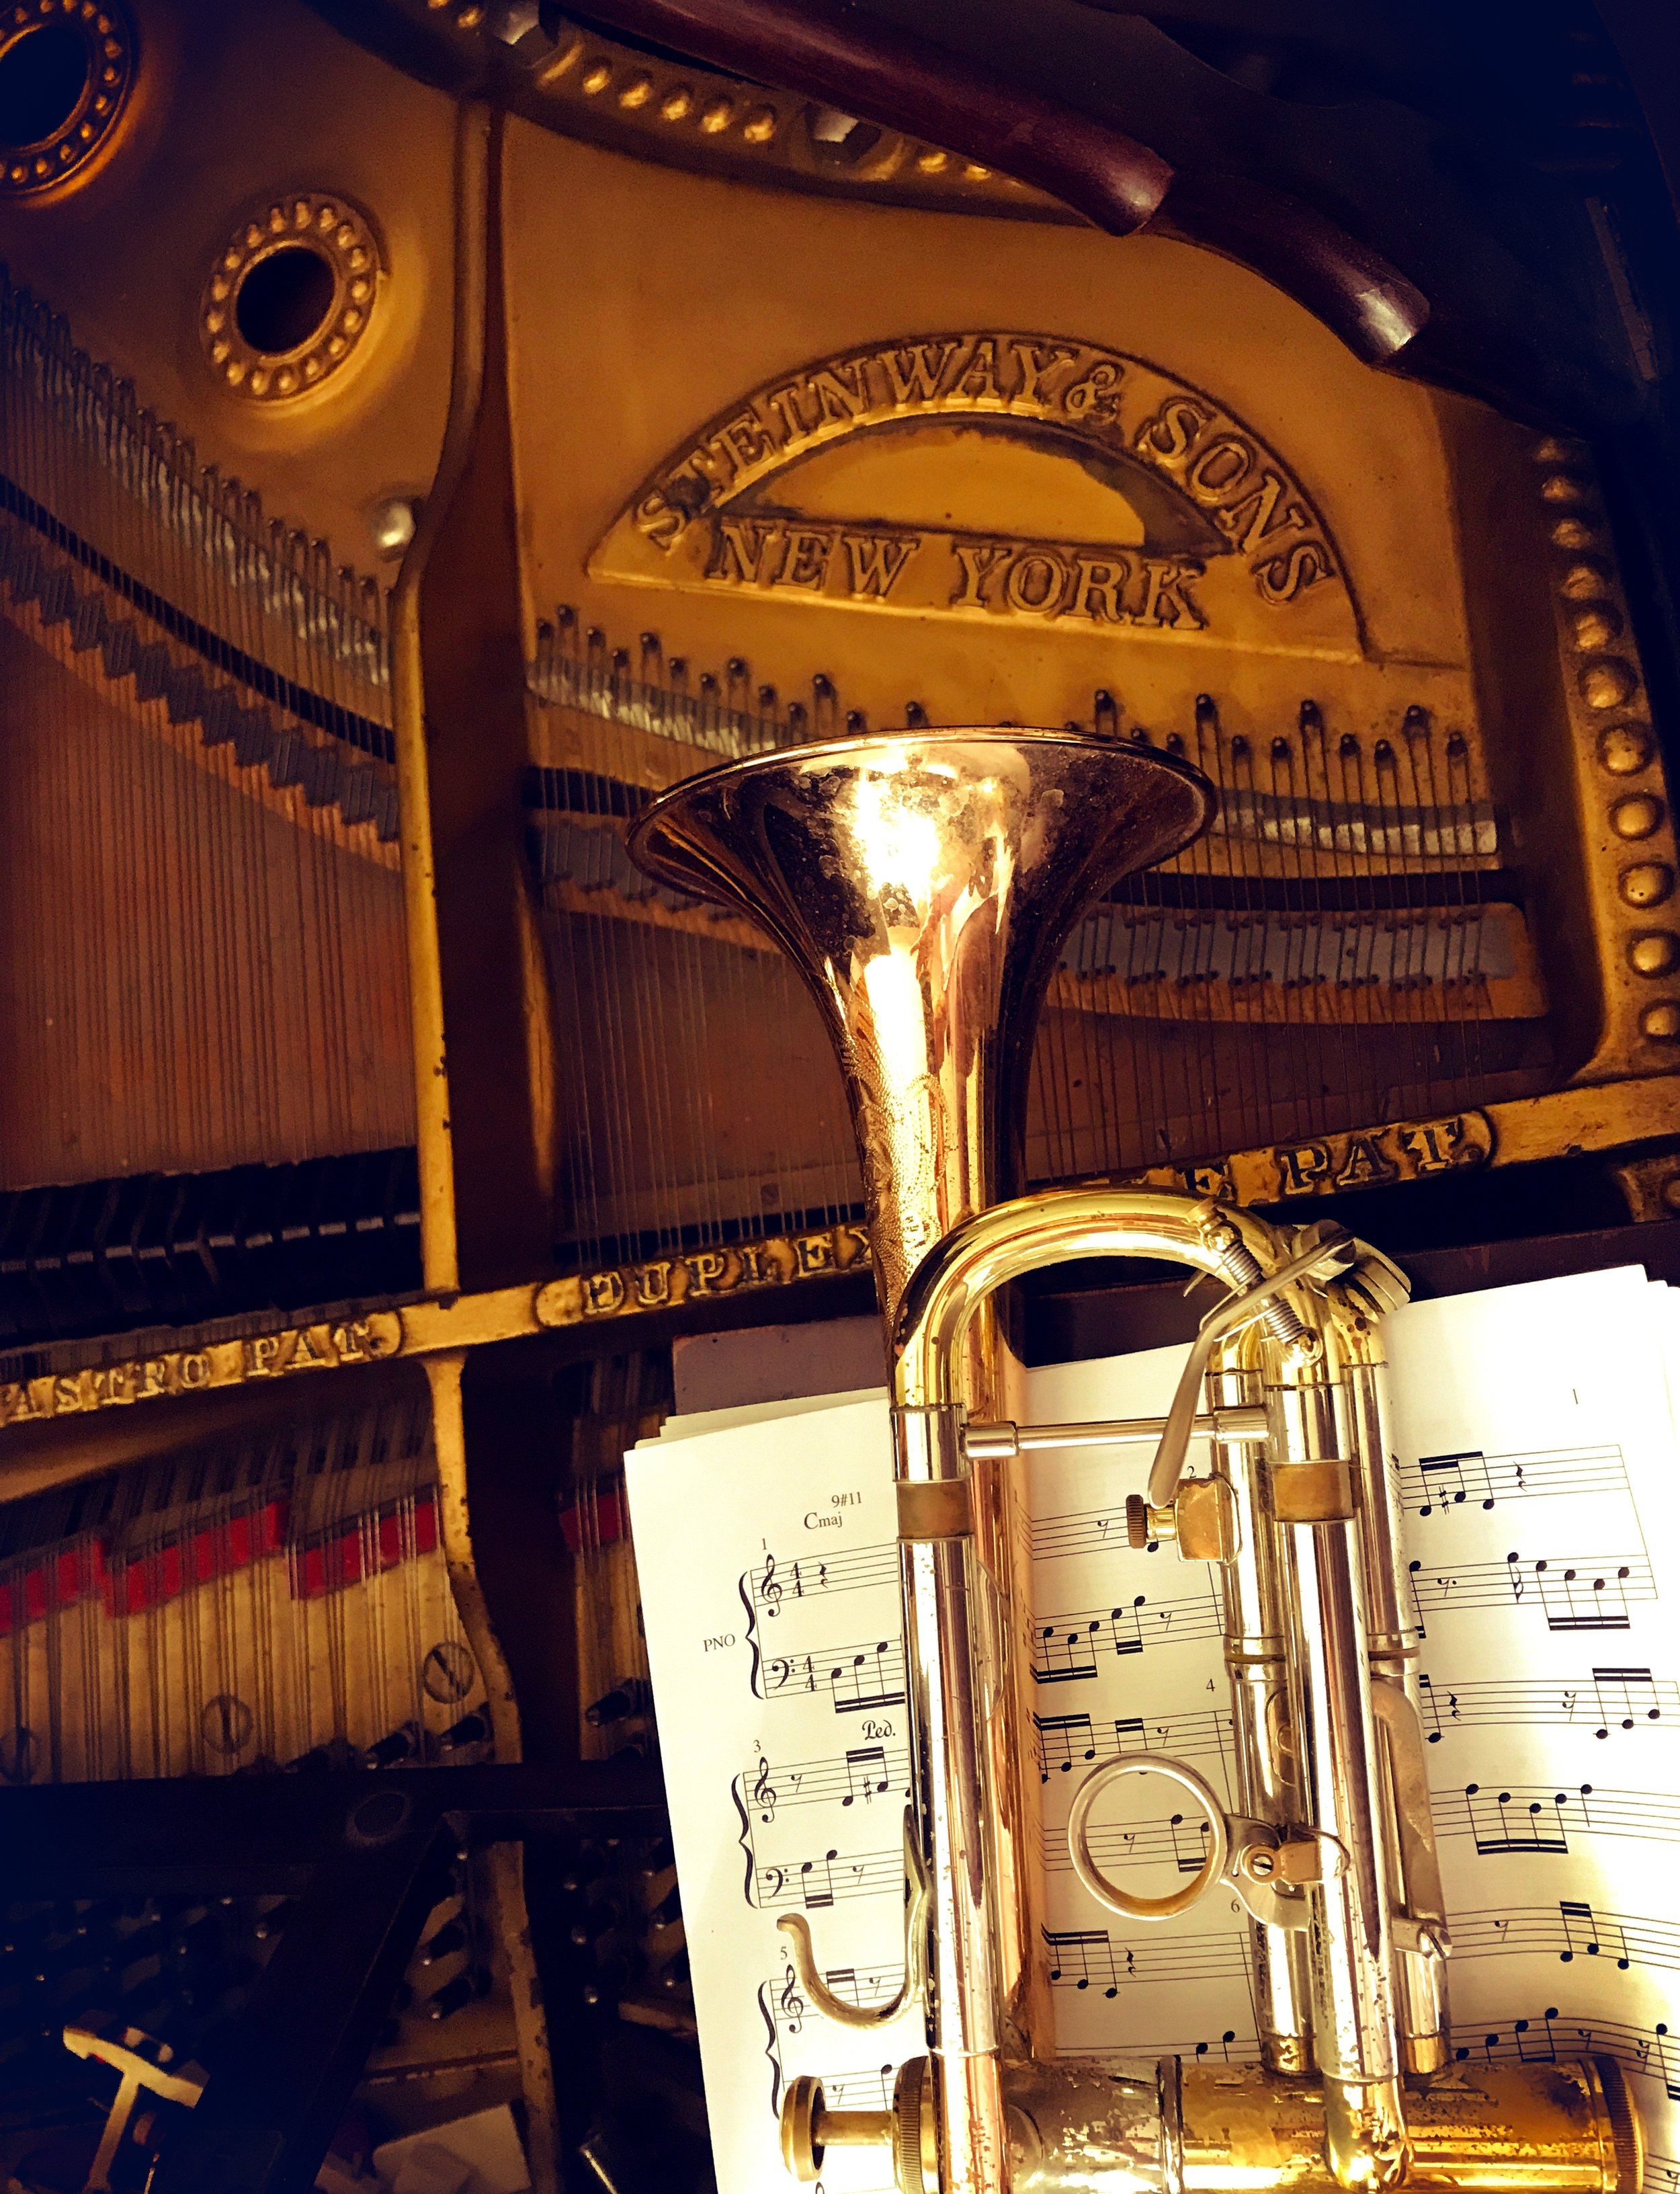 1926 STEINWAY Concert Grand Piano - 1976 OLDS Recording Trumpet